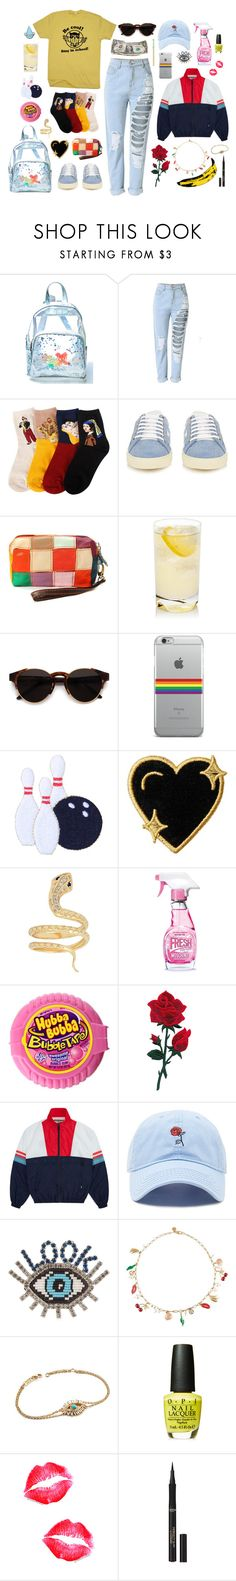 """My Style"" by hanolaughter ❤ liked on Polyvore featuring Current Mood, Yves Saint Laurent, RetroSuperFuture, Stoney Clover Lane, Iconery Basics, Moschino, Andy Warhol, Forever 21, Shourouk and Tory Burch"